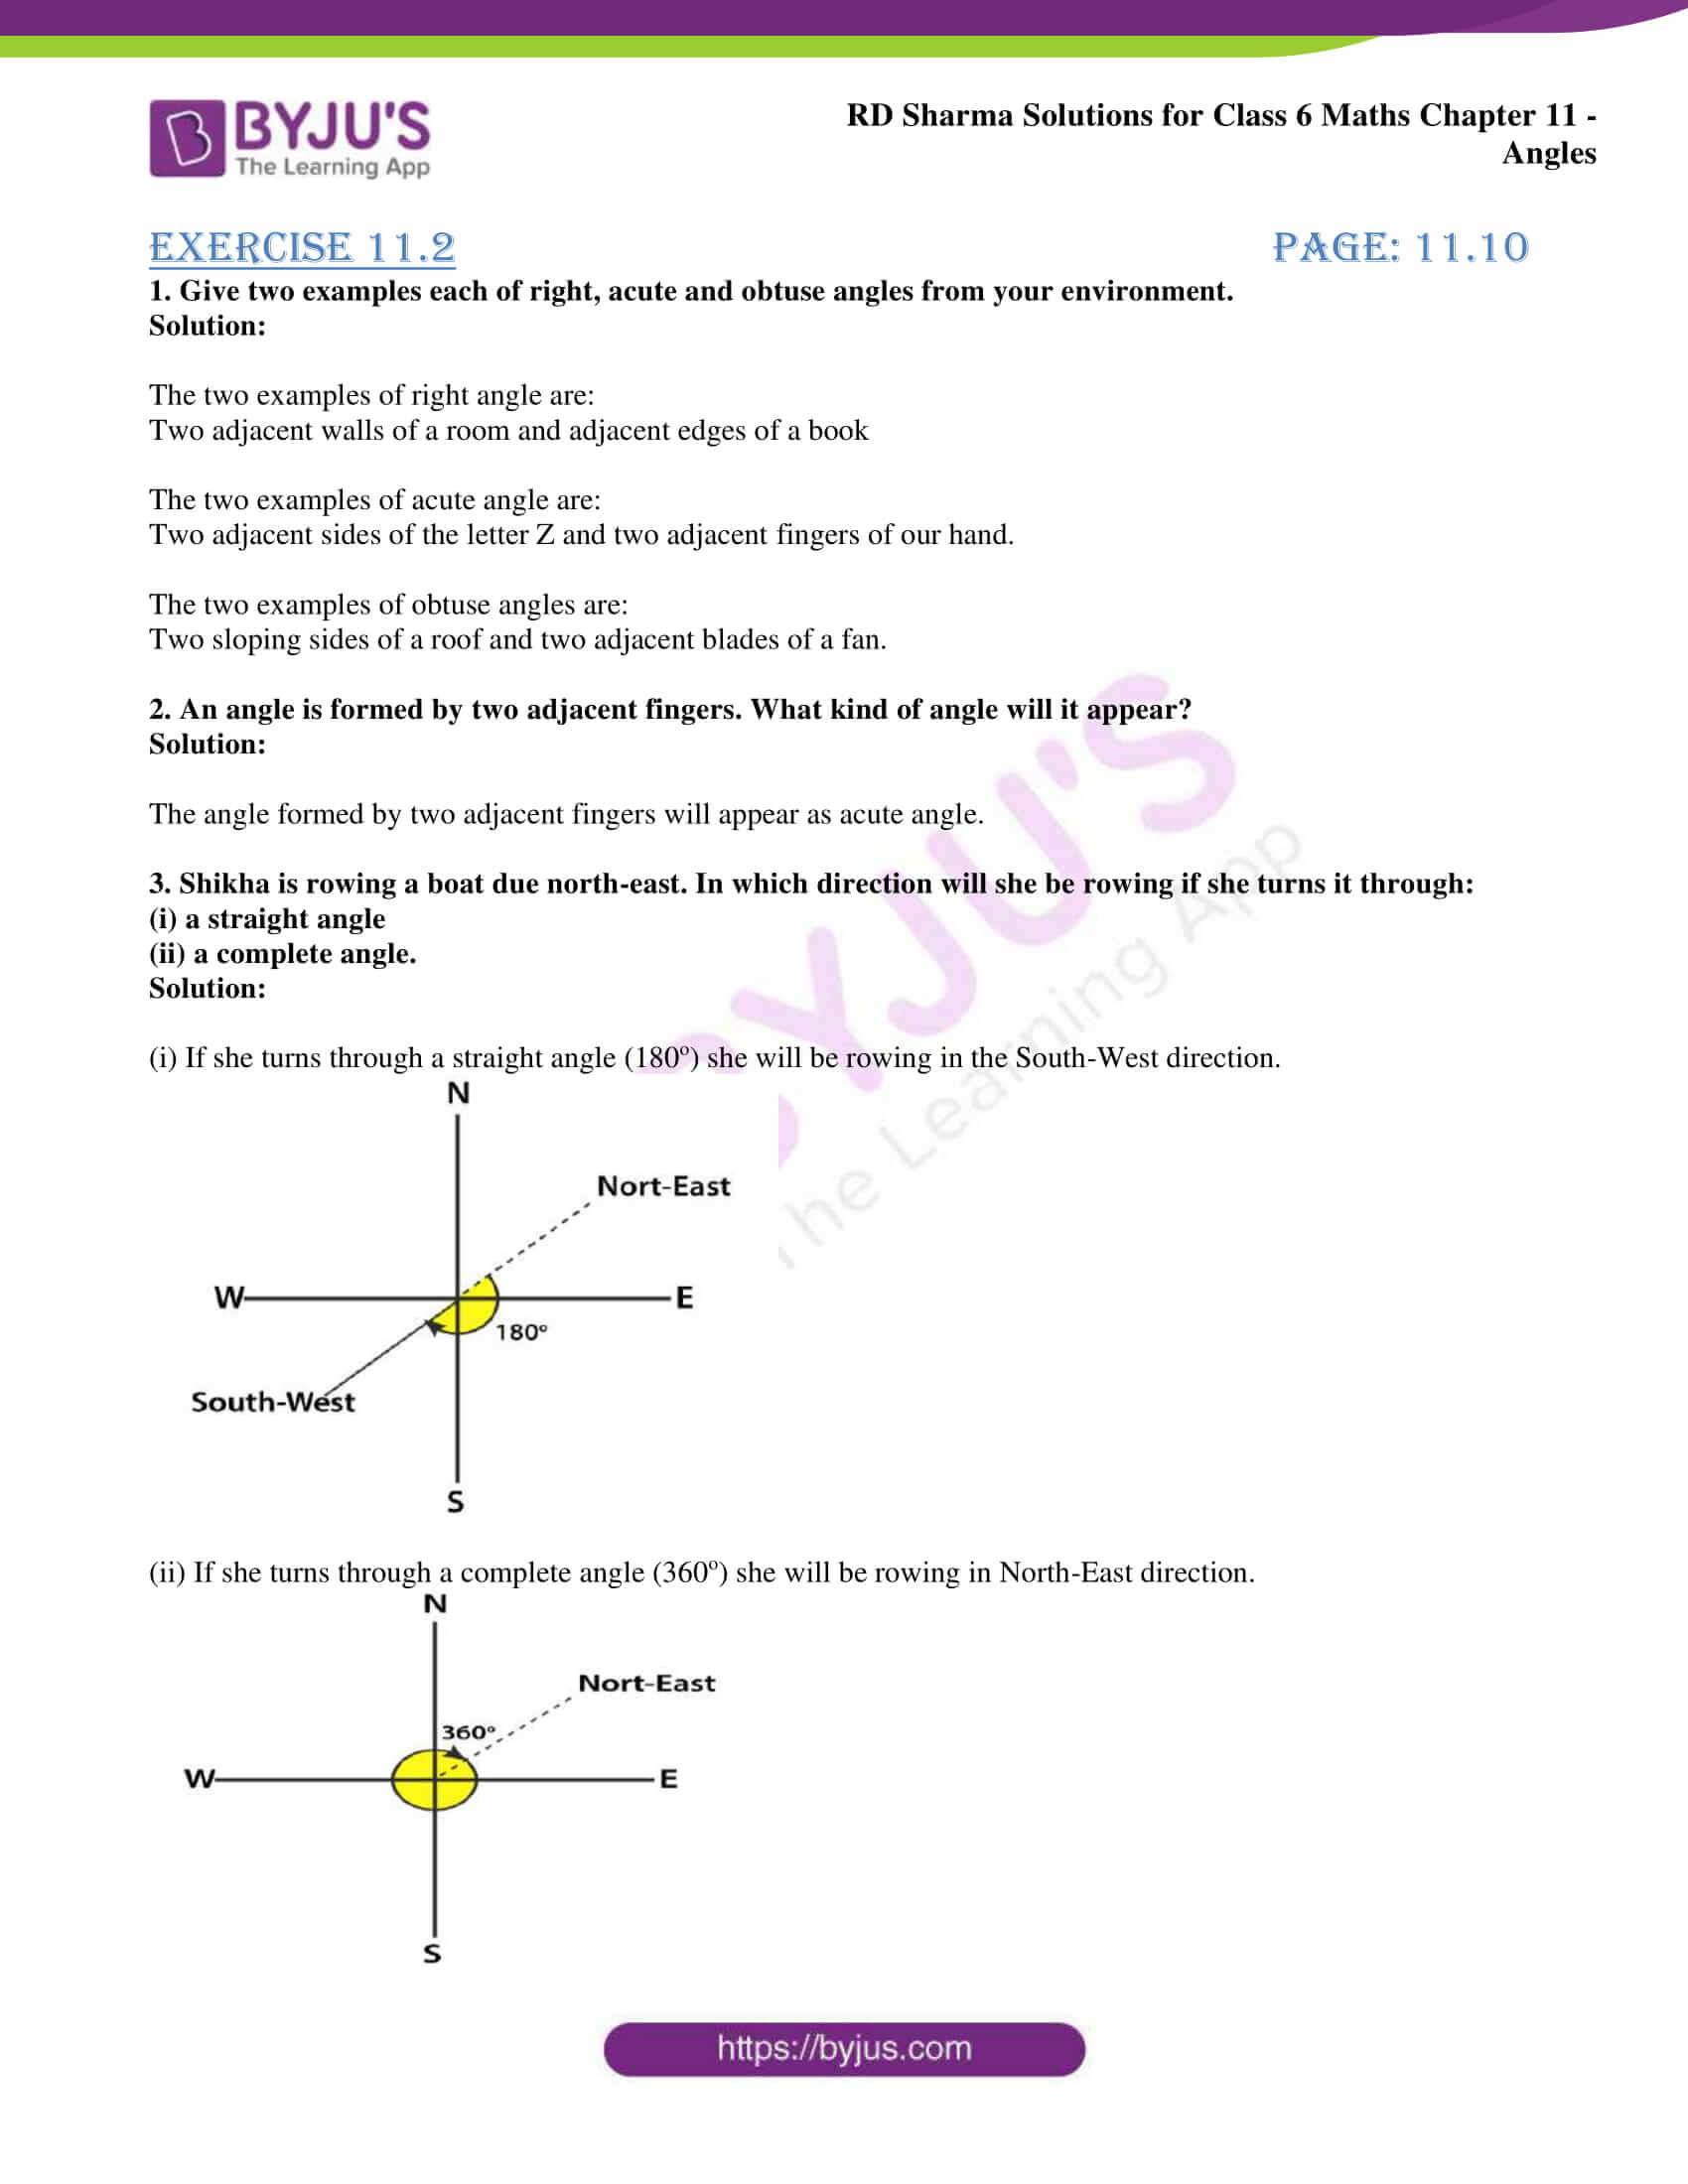 rd sharma solutions class 6 maths chapter 11 Exercise 11.2 06